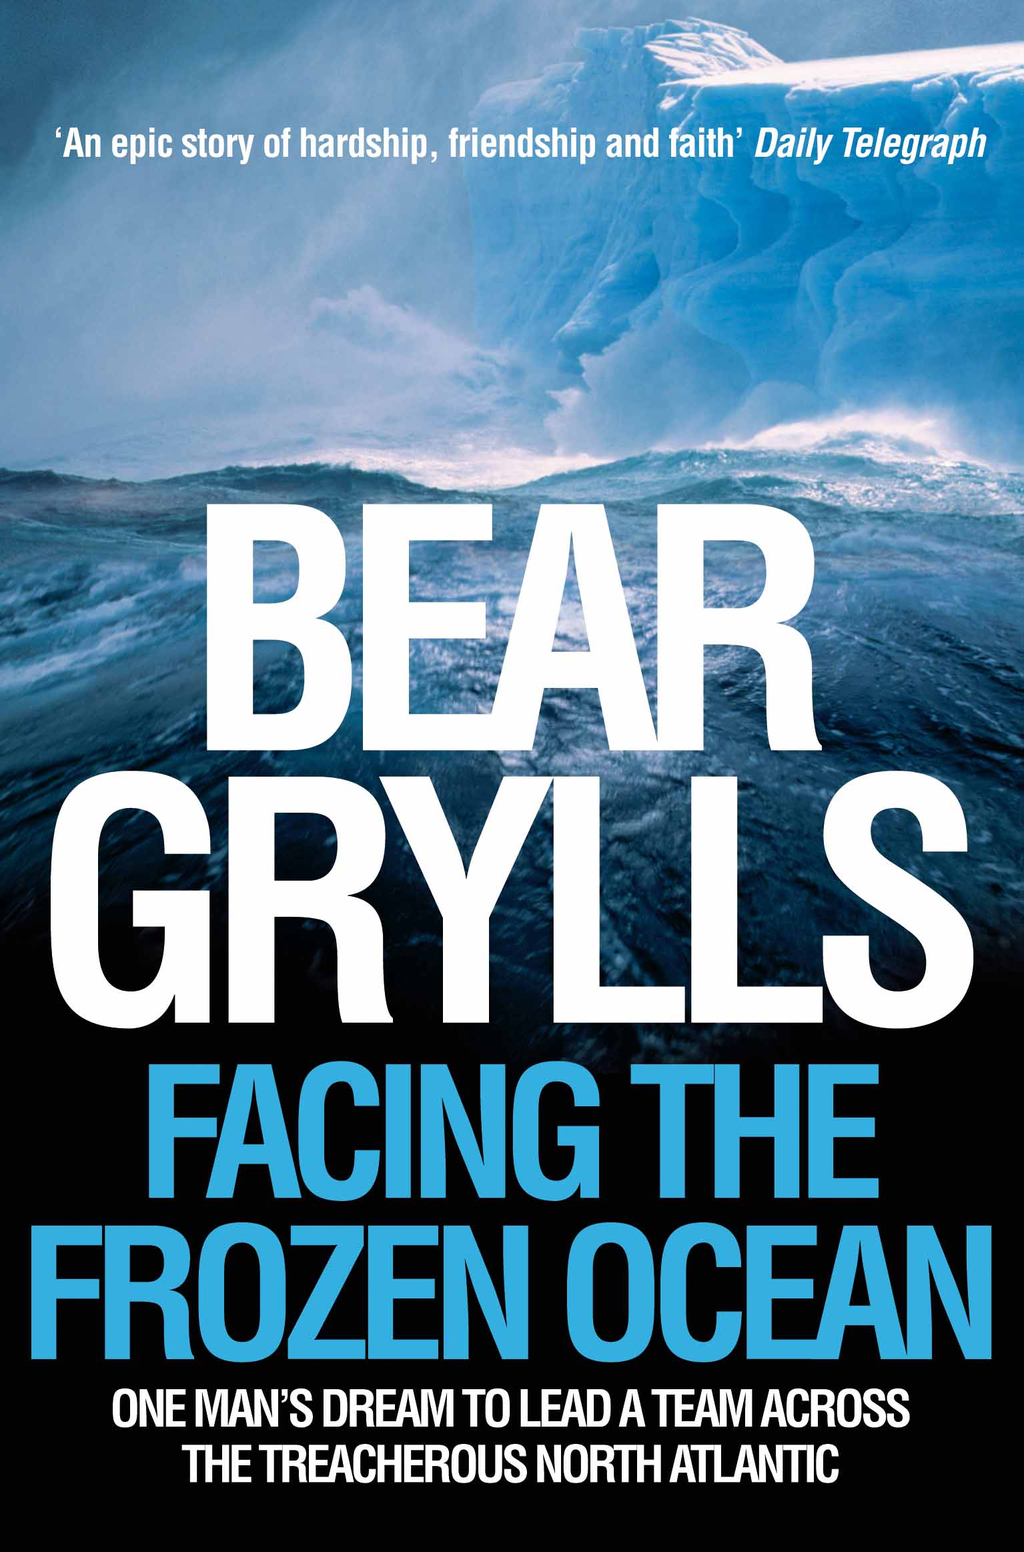 Facing the Frozen Ocean One man's dream to lead a team across the treacherous North Atlantic